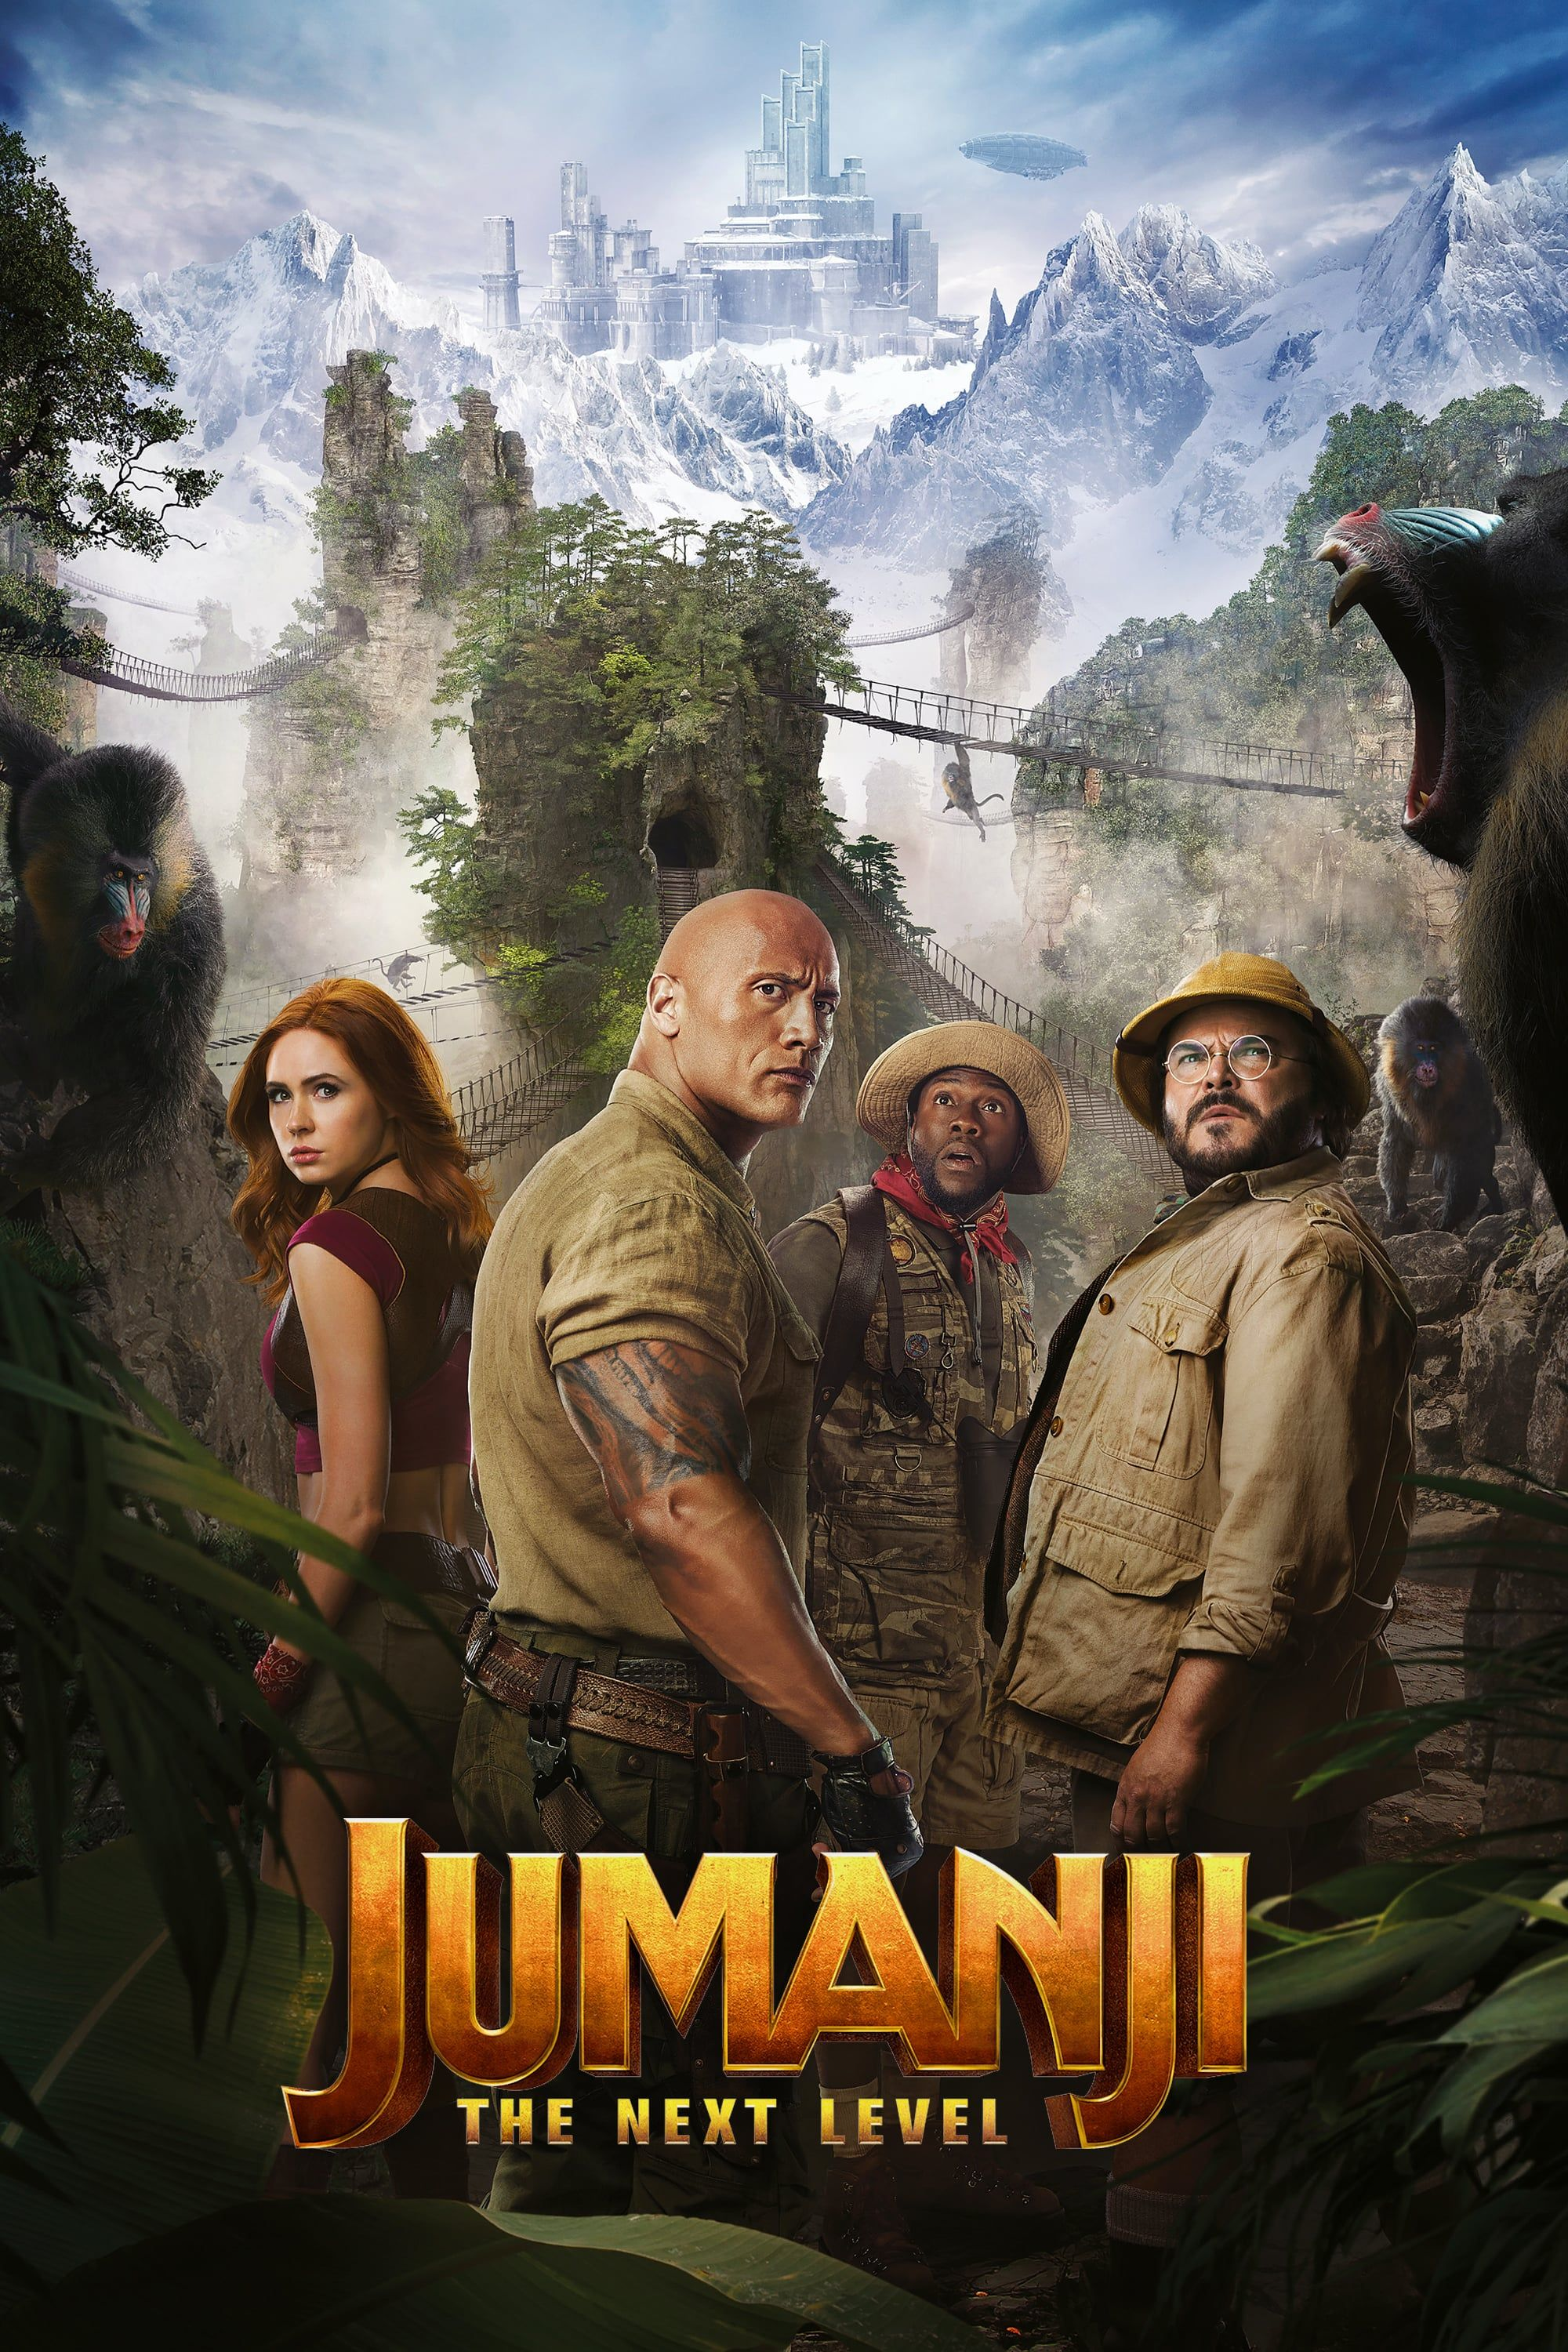 Google Drive Jumanji The Next Level 2019 Movie Streming 1080p Hd Streaming Movies Free Free Movies Online Full Movies Online Free